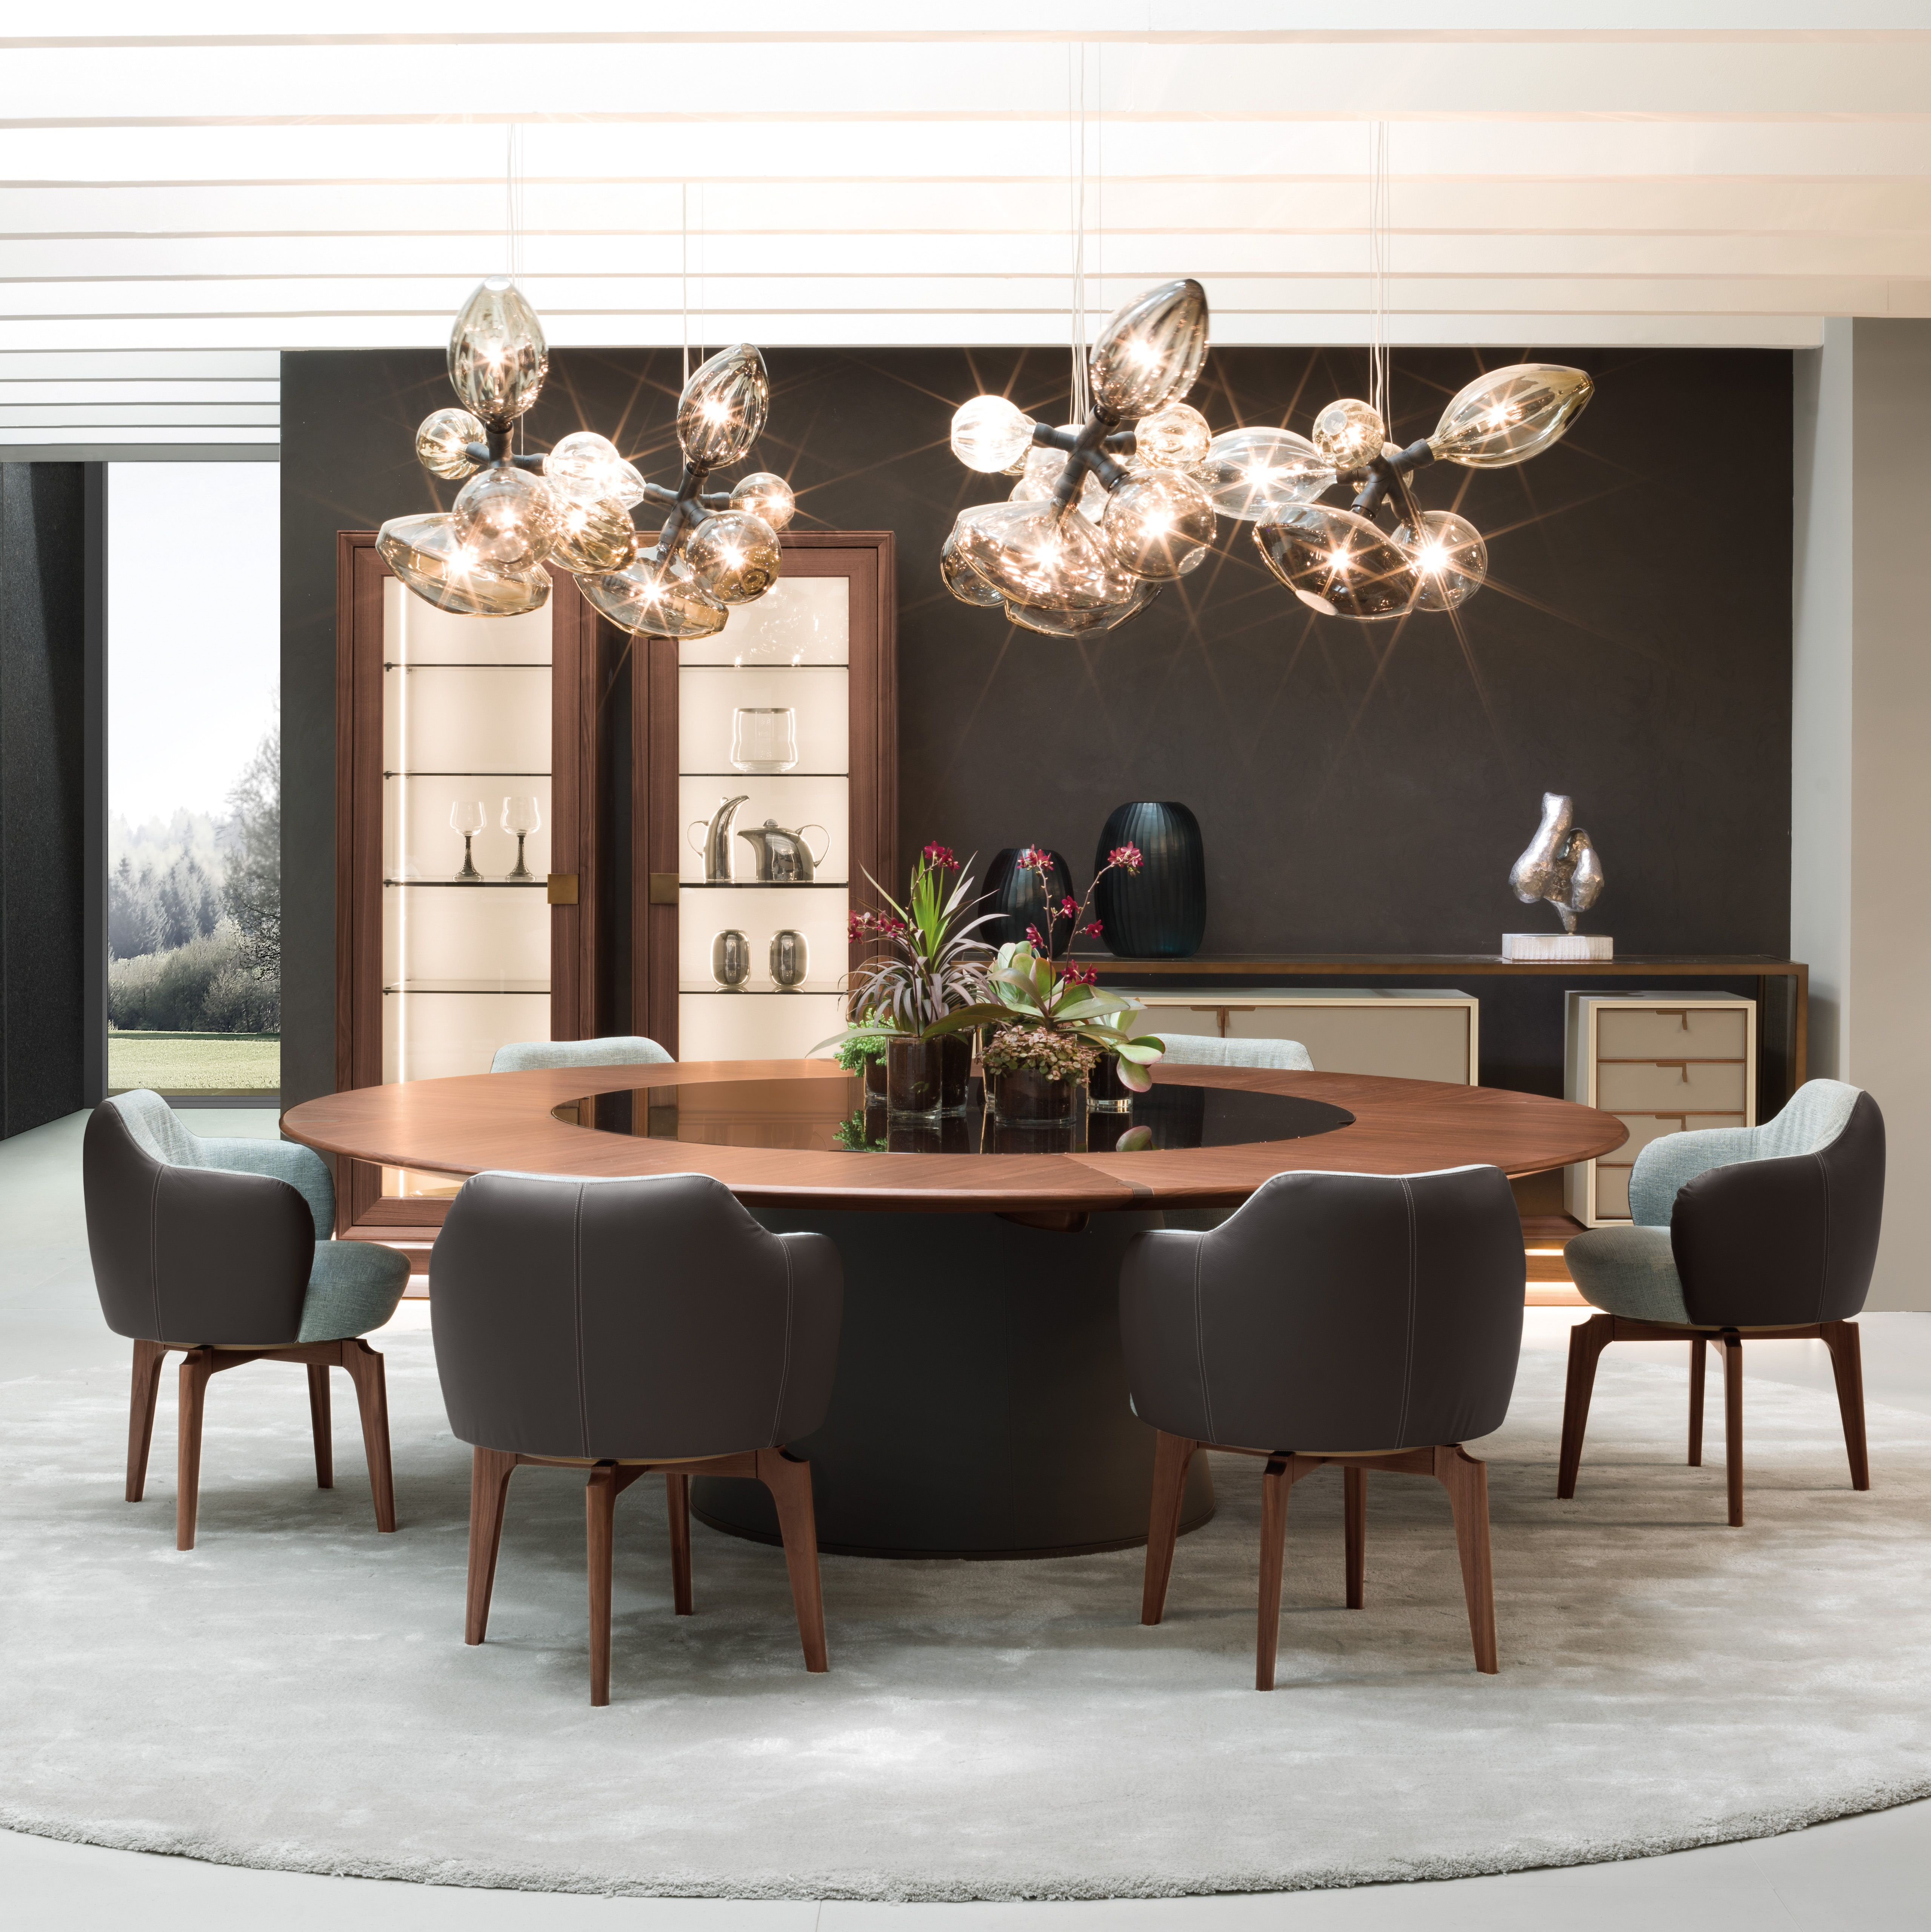 Discover new suggestions for your dining room giorgetti interior design luxury furniture home homedesign homedecor interiordesign interiorideas